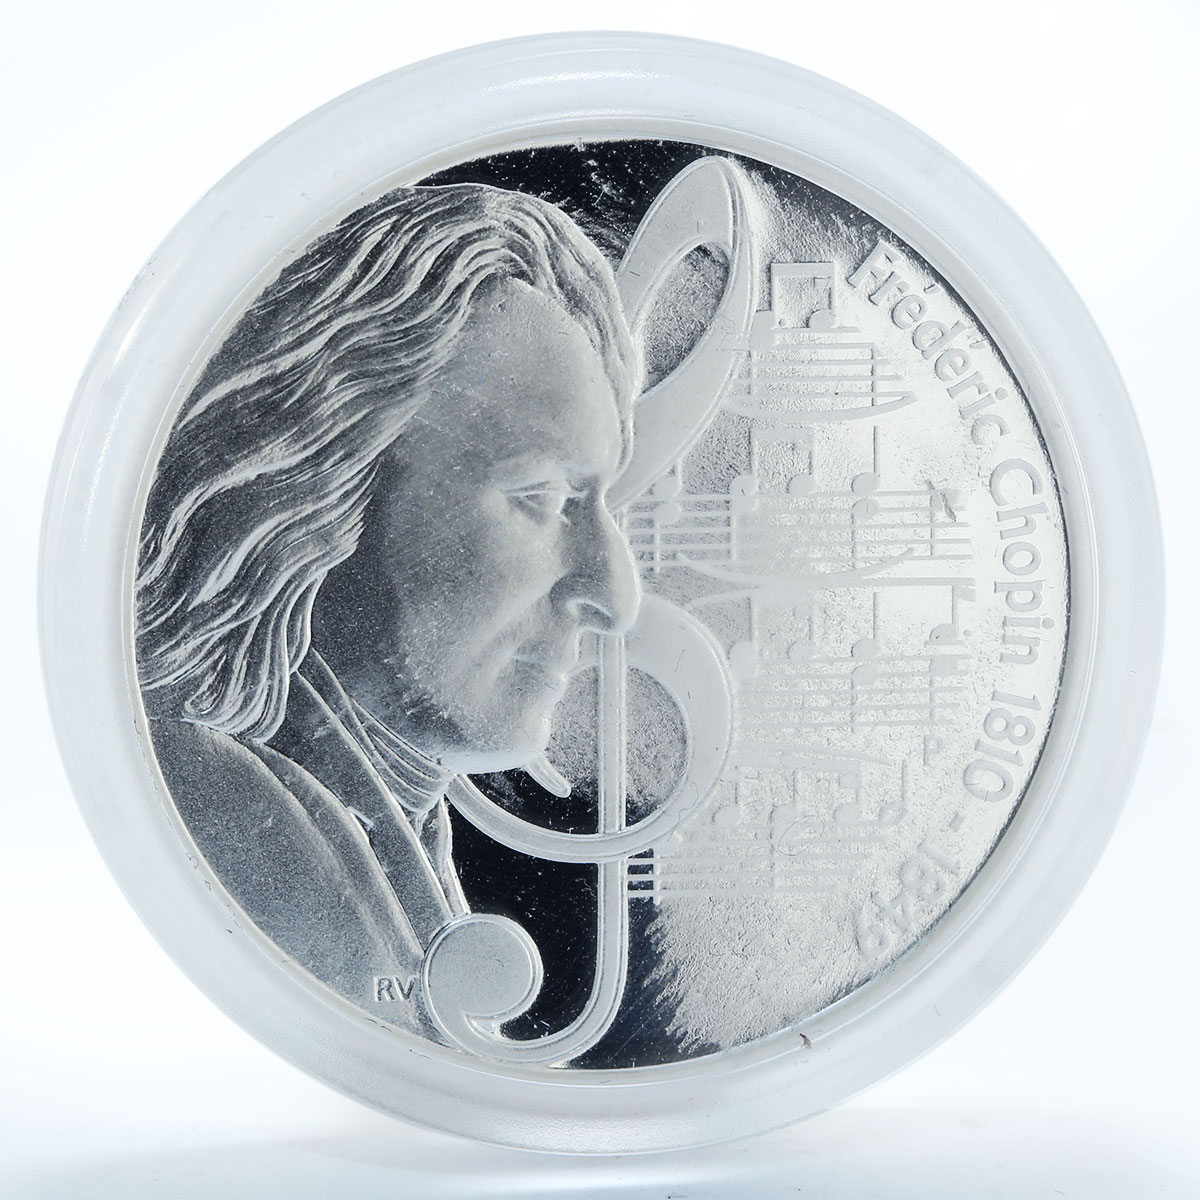 Tuvalu 1 dollar Frederik Chopin 1810-1849 proof silver coin 2010